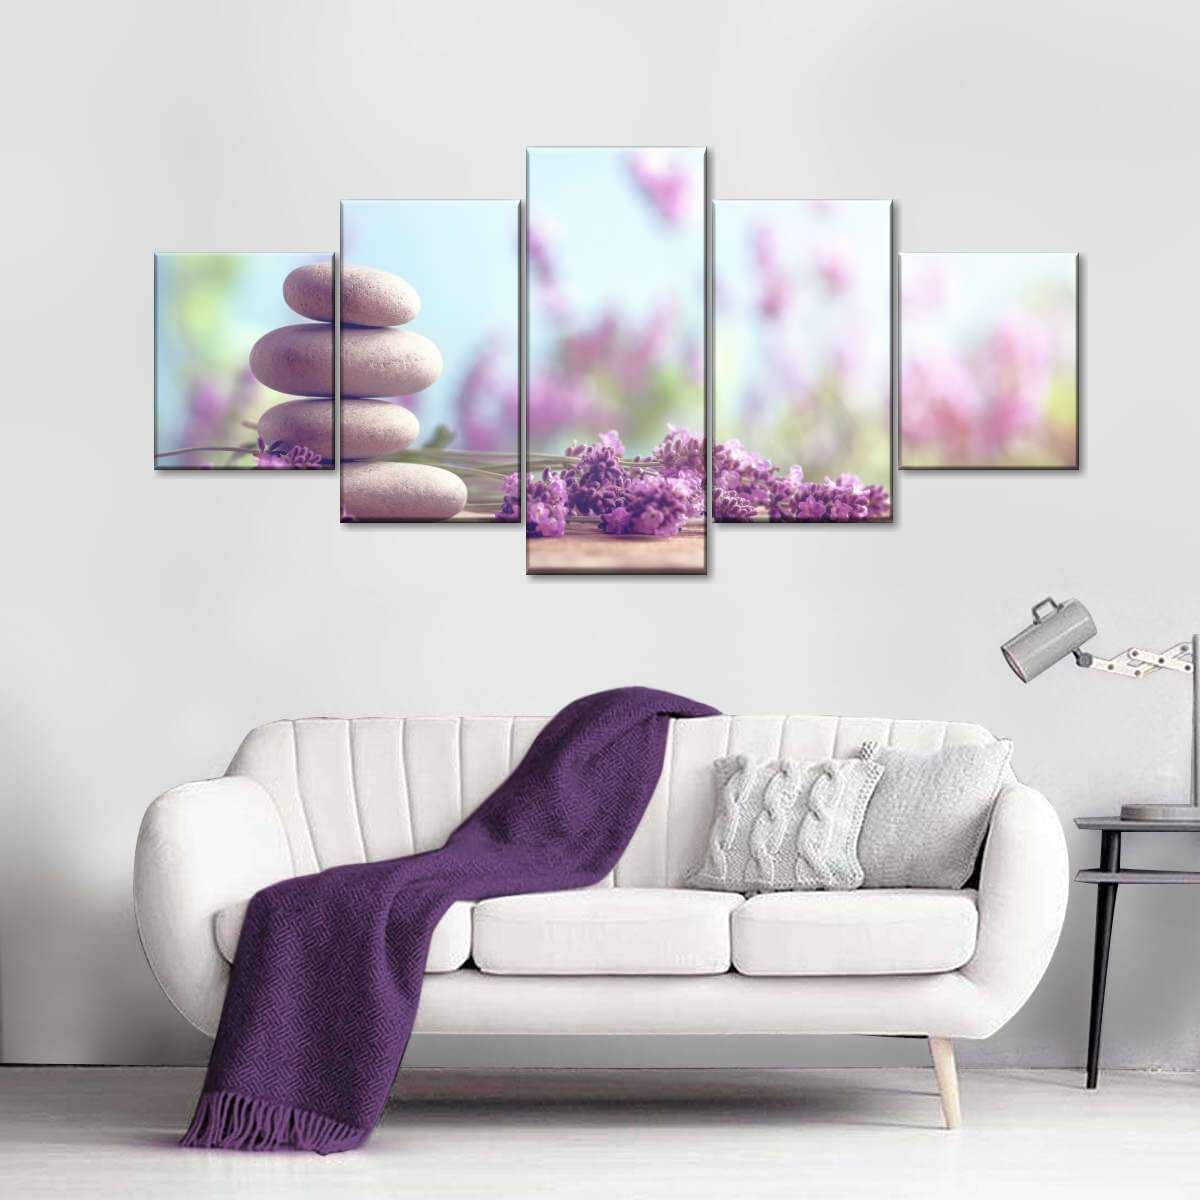 Lavender Relaxation Multi Panel Canvas Wall Art Canvas Wall Art Wall Art Canvas Prints Massage Room Decor